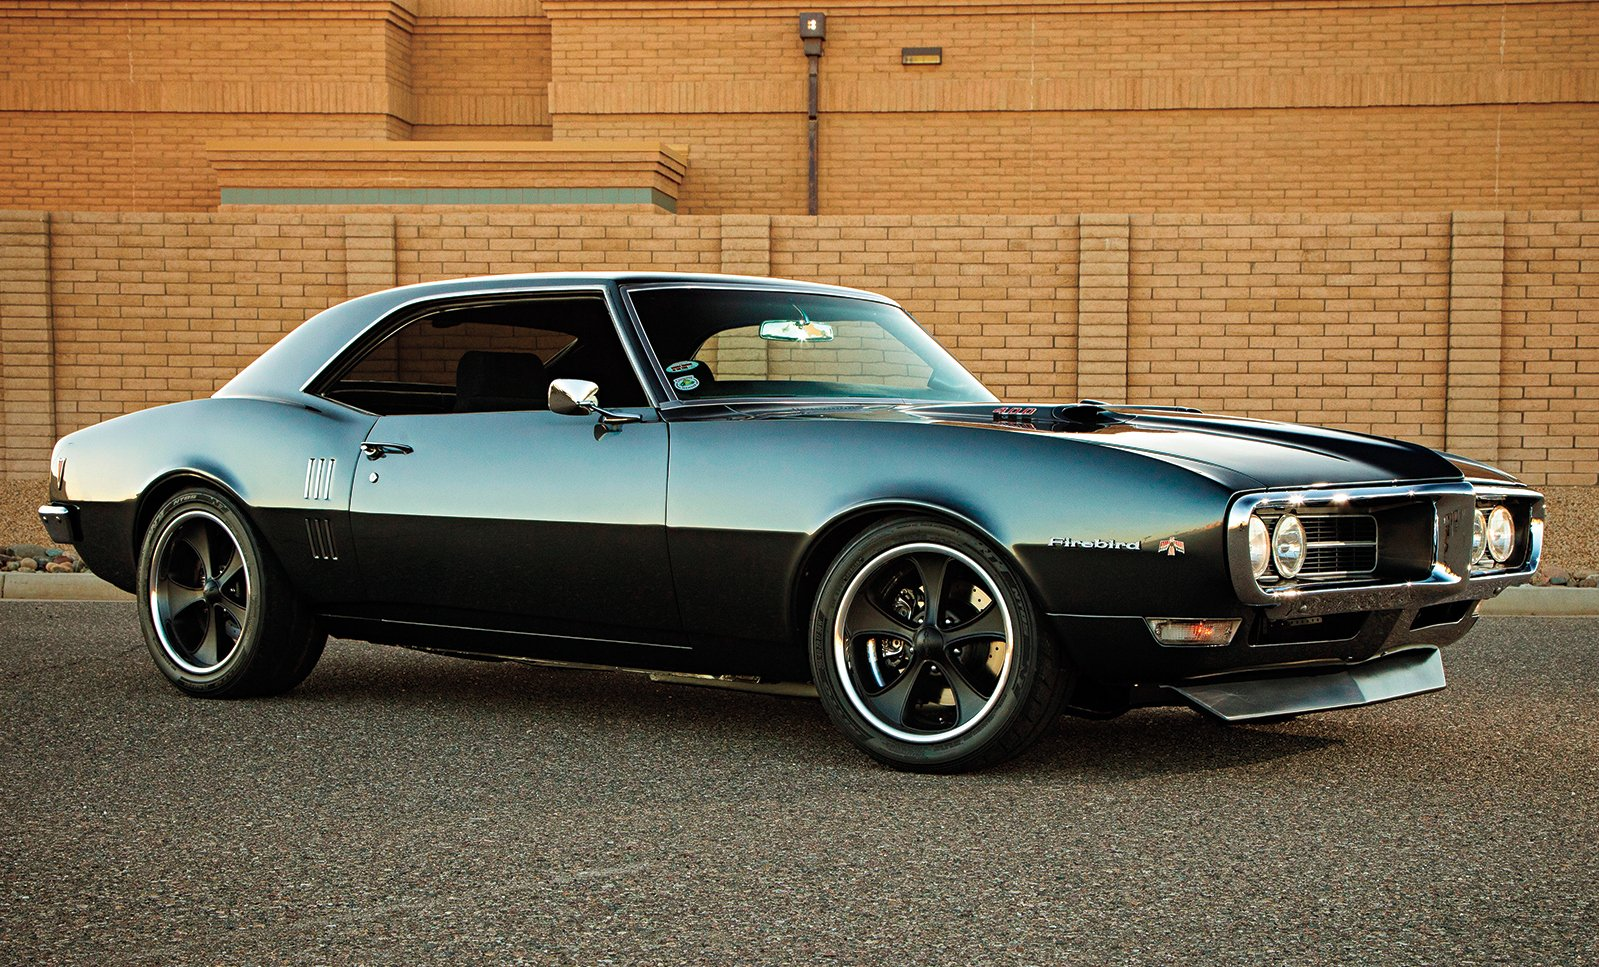 1968 pontiac firebird 400 wallpaper 1599x967 289569 wallpaperup. Black Bedroom Furniture Sets. Home Design Ideas